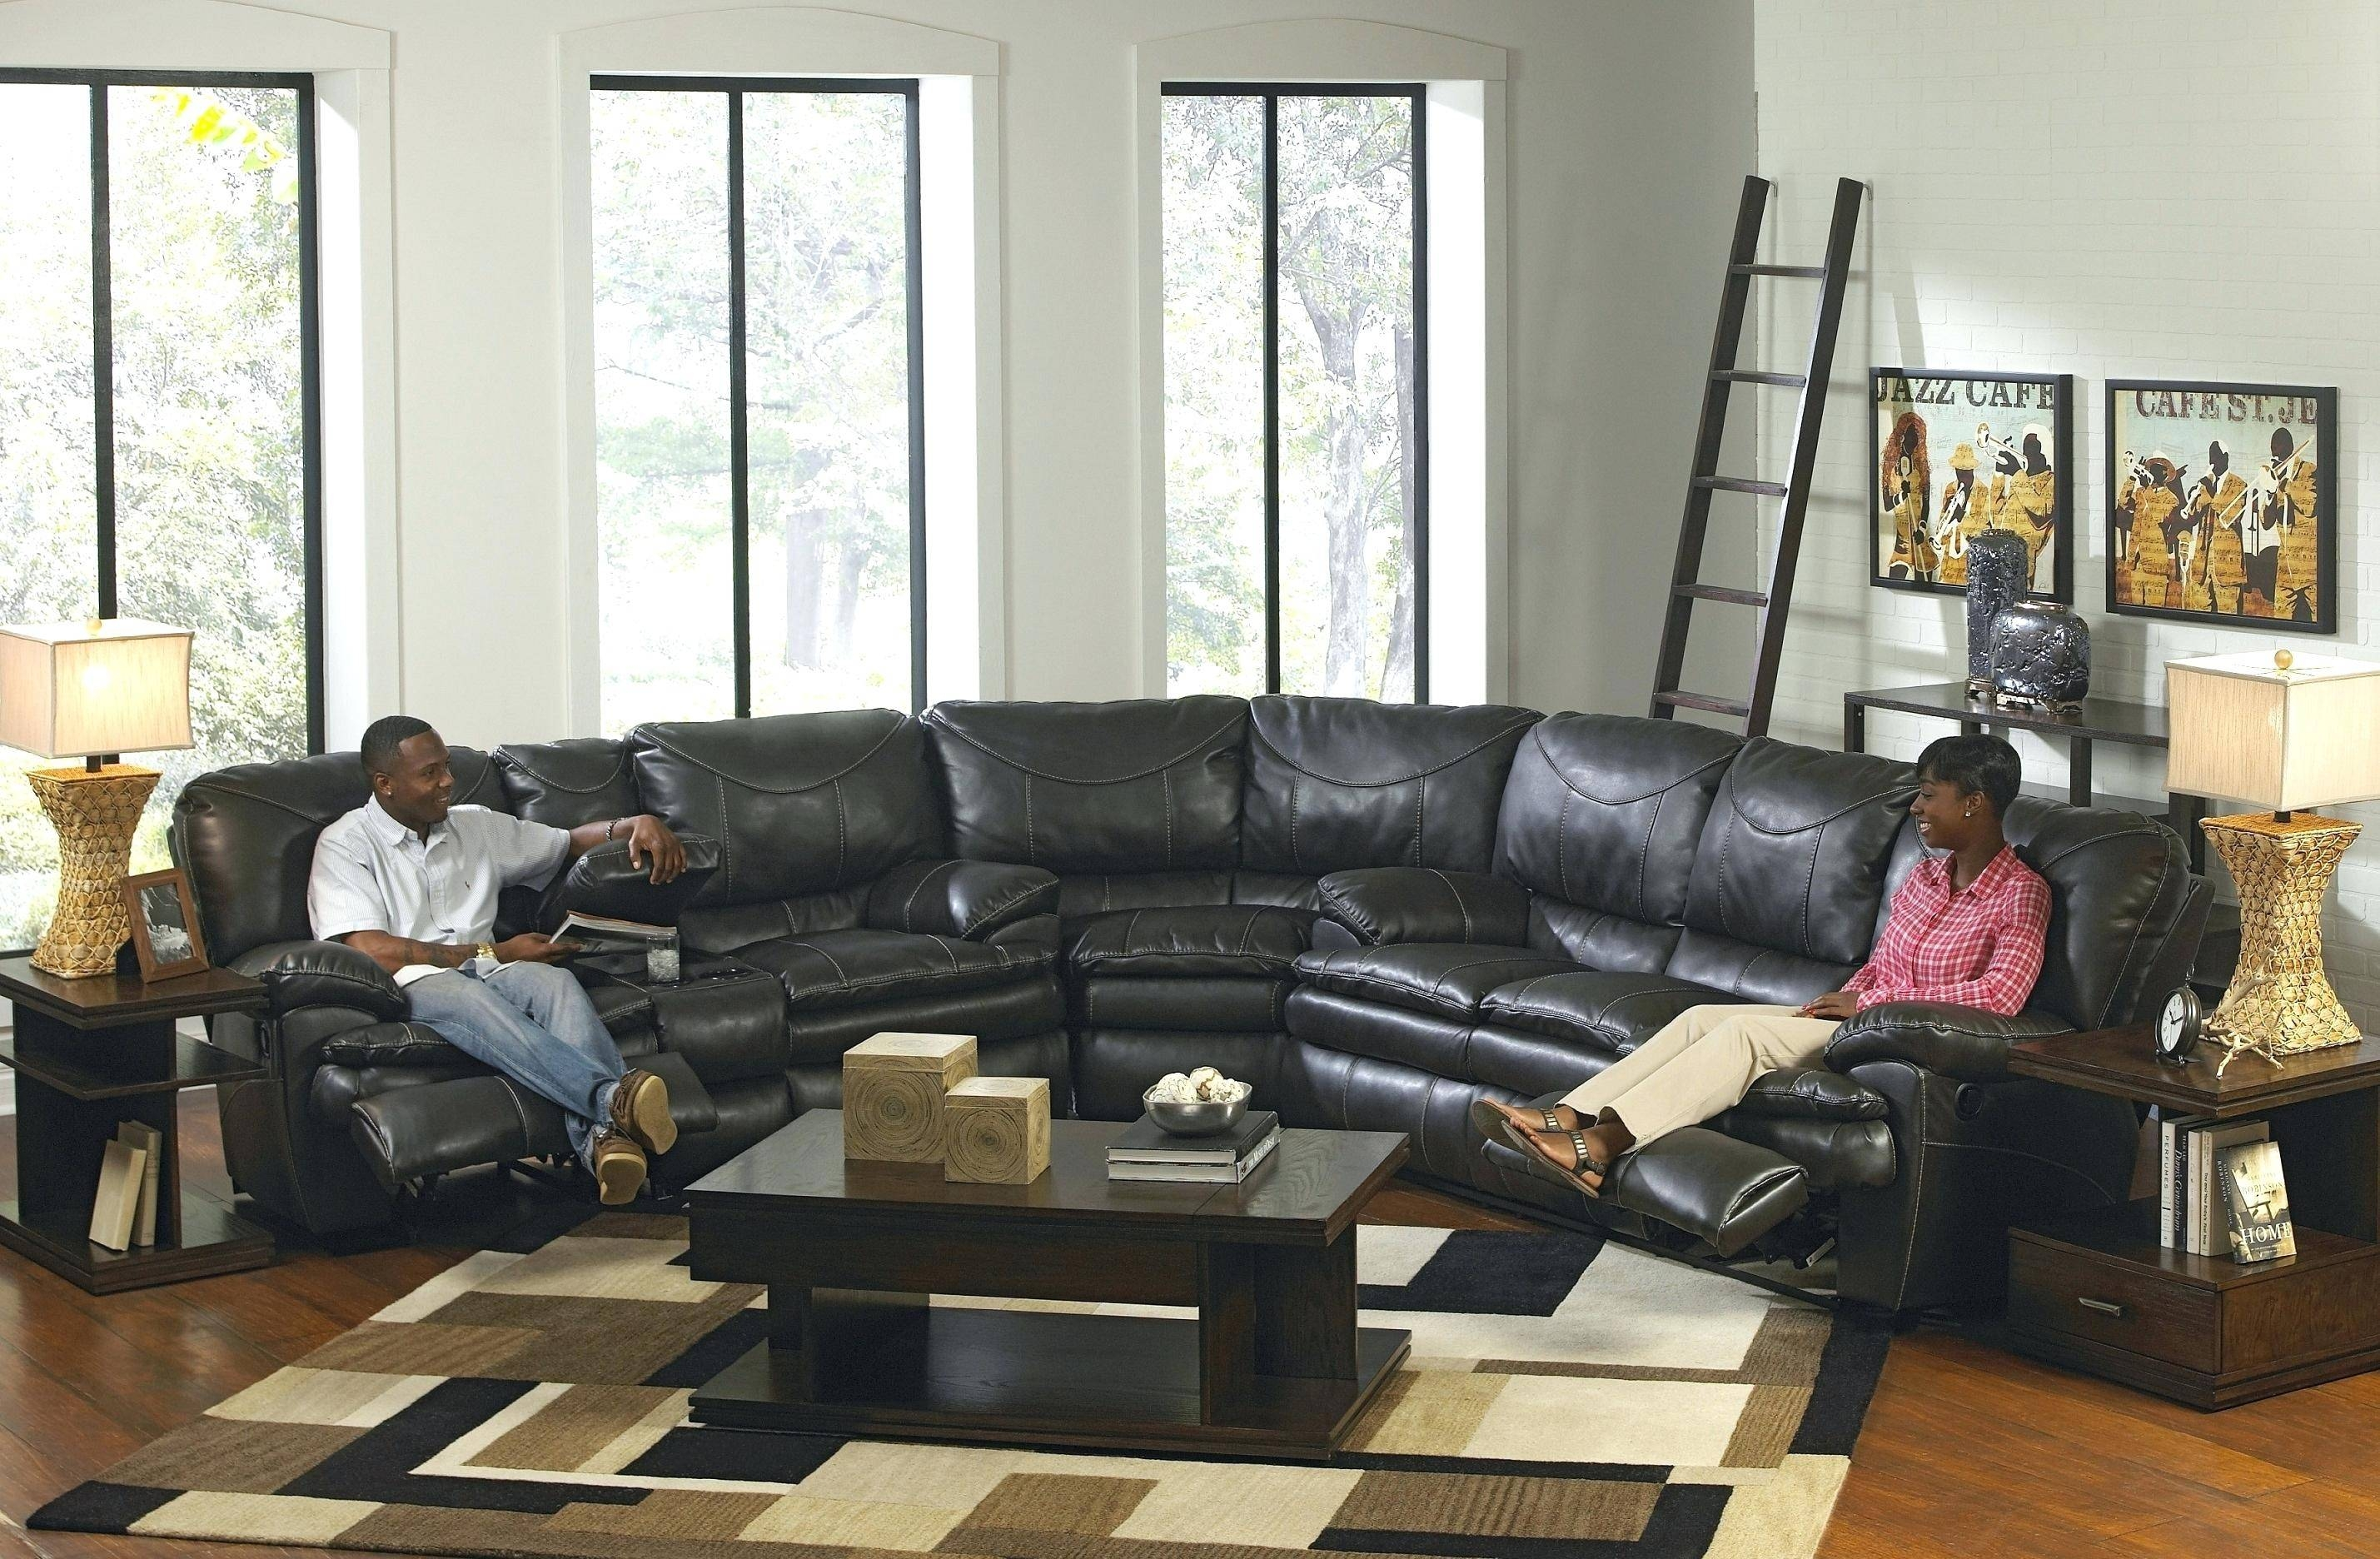 12 Best Of Berkline Sectional Sofa within Berkline Sectional Sofa (Image 3 of 30)